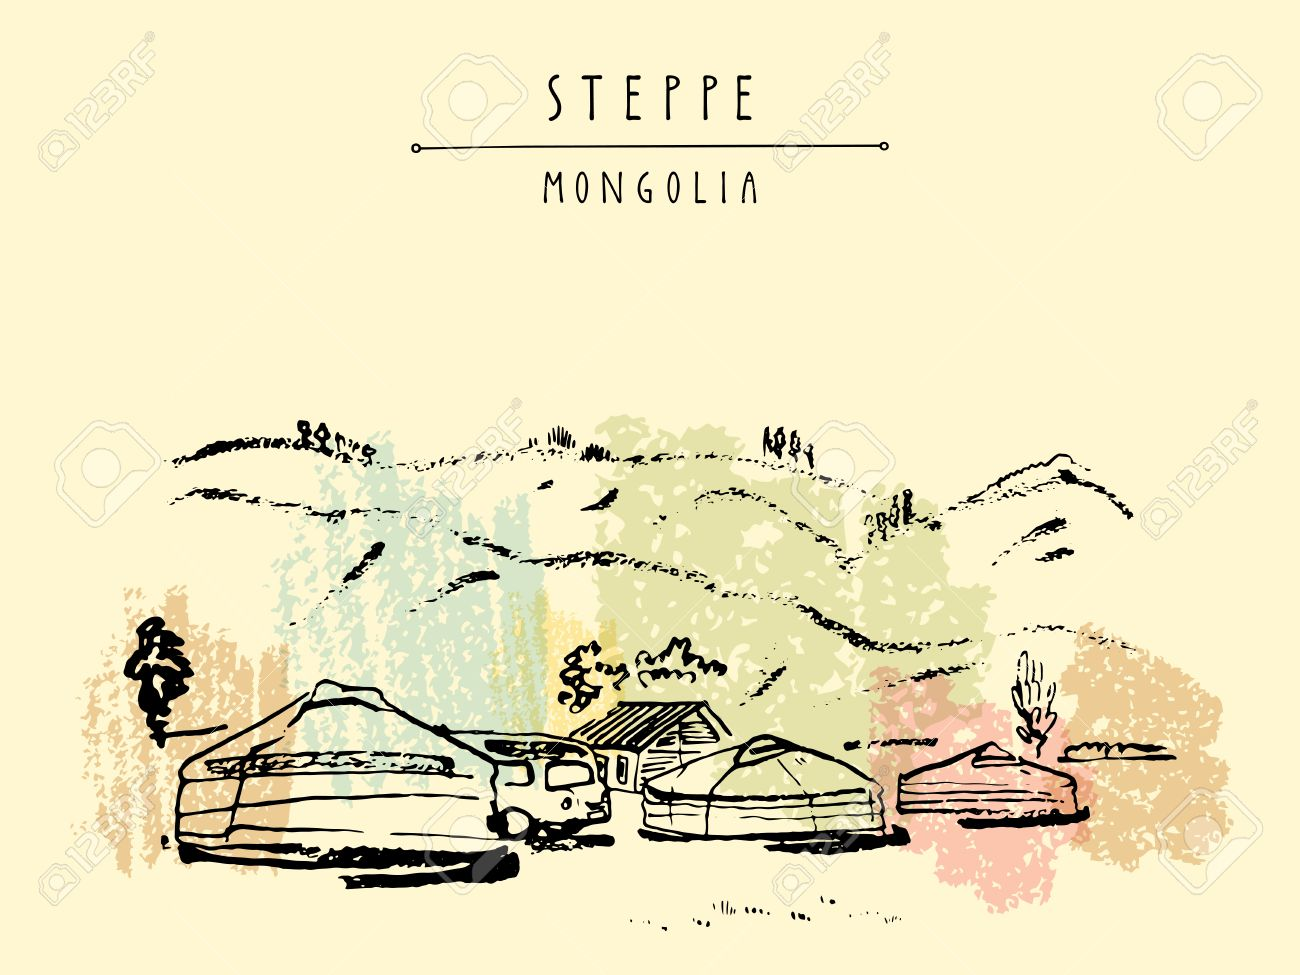 Vector Mongolia postcard. Yurts (gers) traditional Mongolian dwellings in Mongolian steppe. Mountains on background. Travel sketch. Brushpen graphic art. Hand drawn vintage book illustration, postcard - 64116059